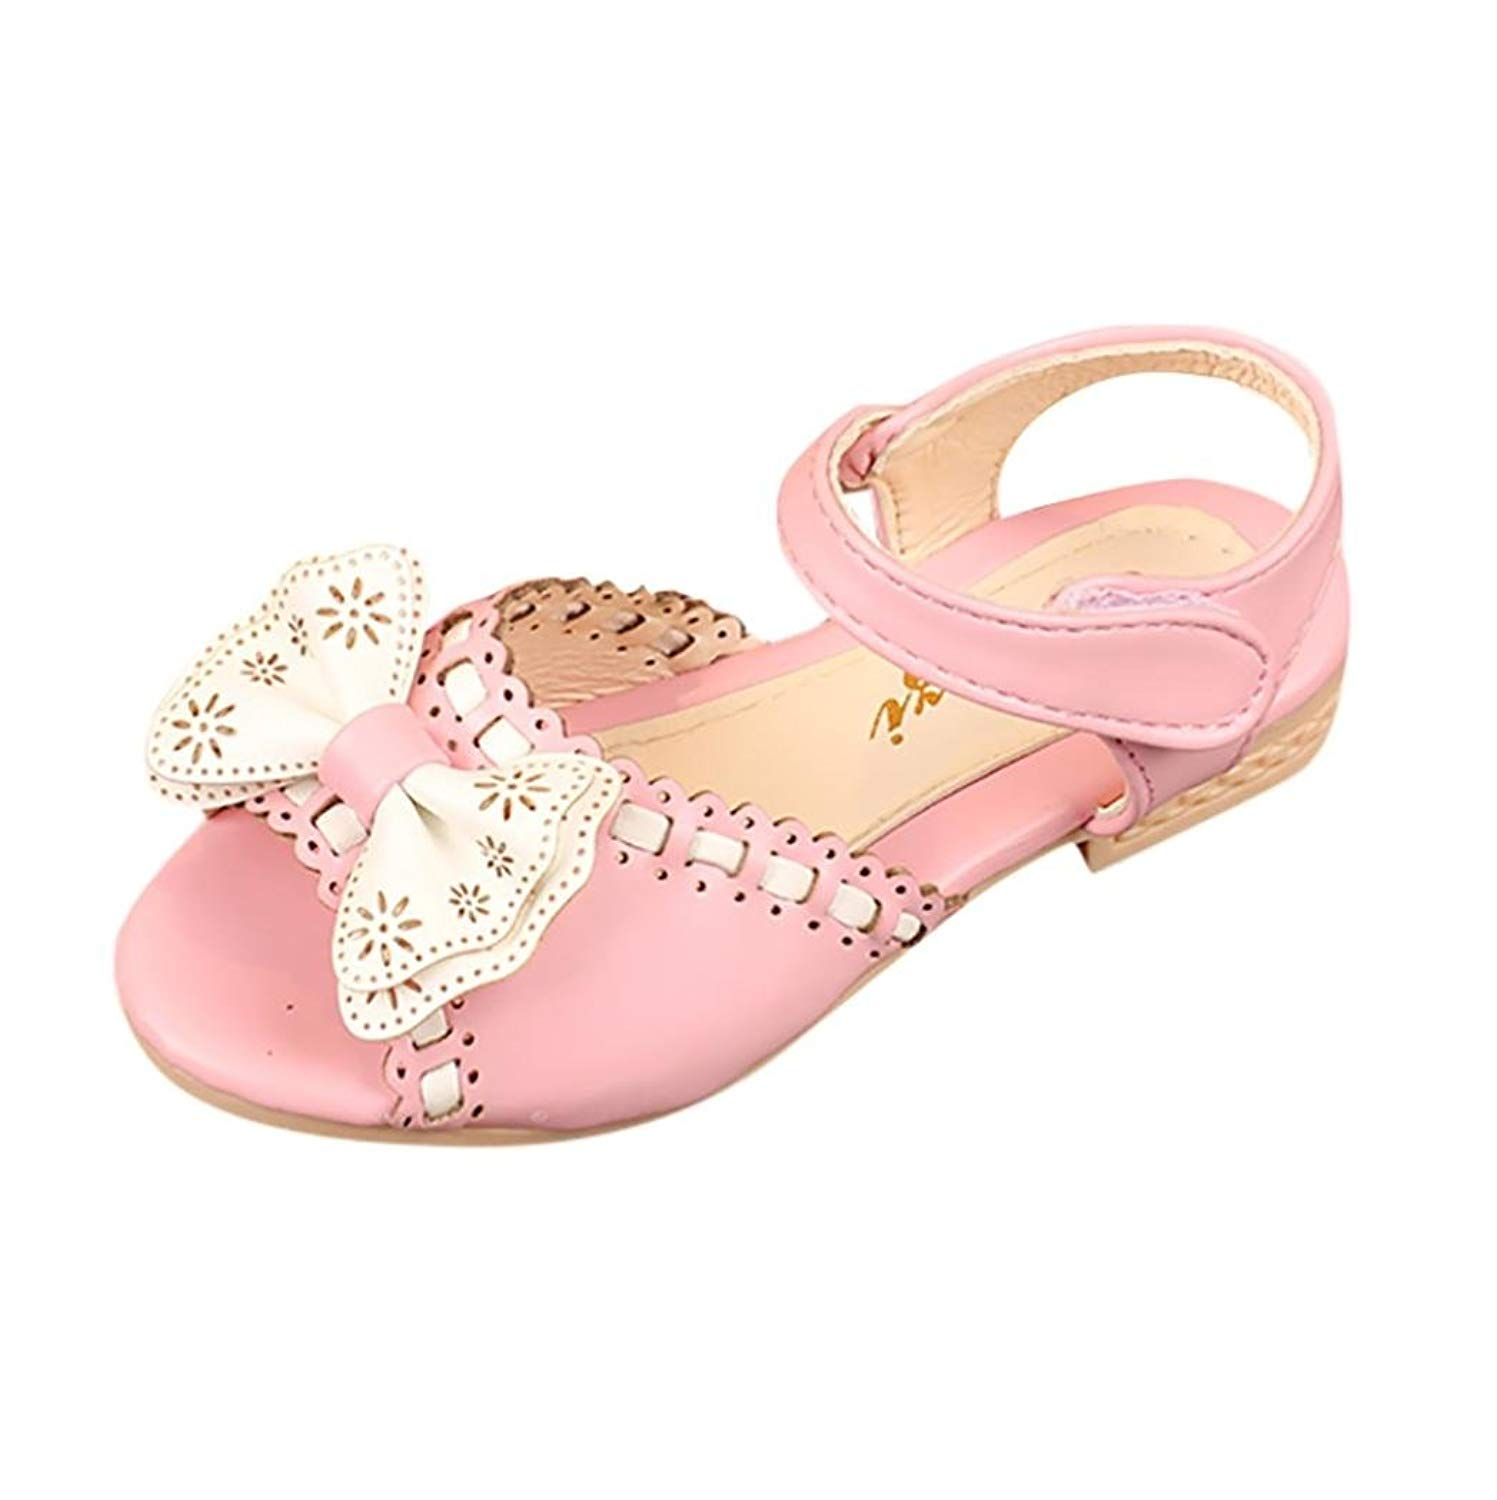 Axinke Girls Summer Peep Toe Flat Princess Sandals with Bowknot for Toddlers/Little Kid/Big Kid